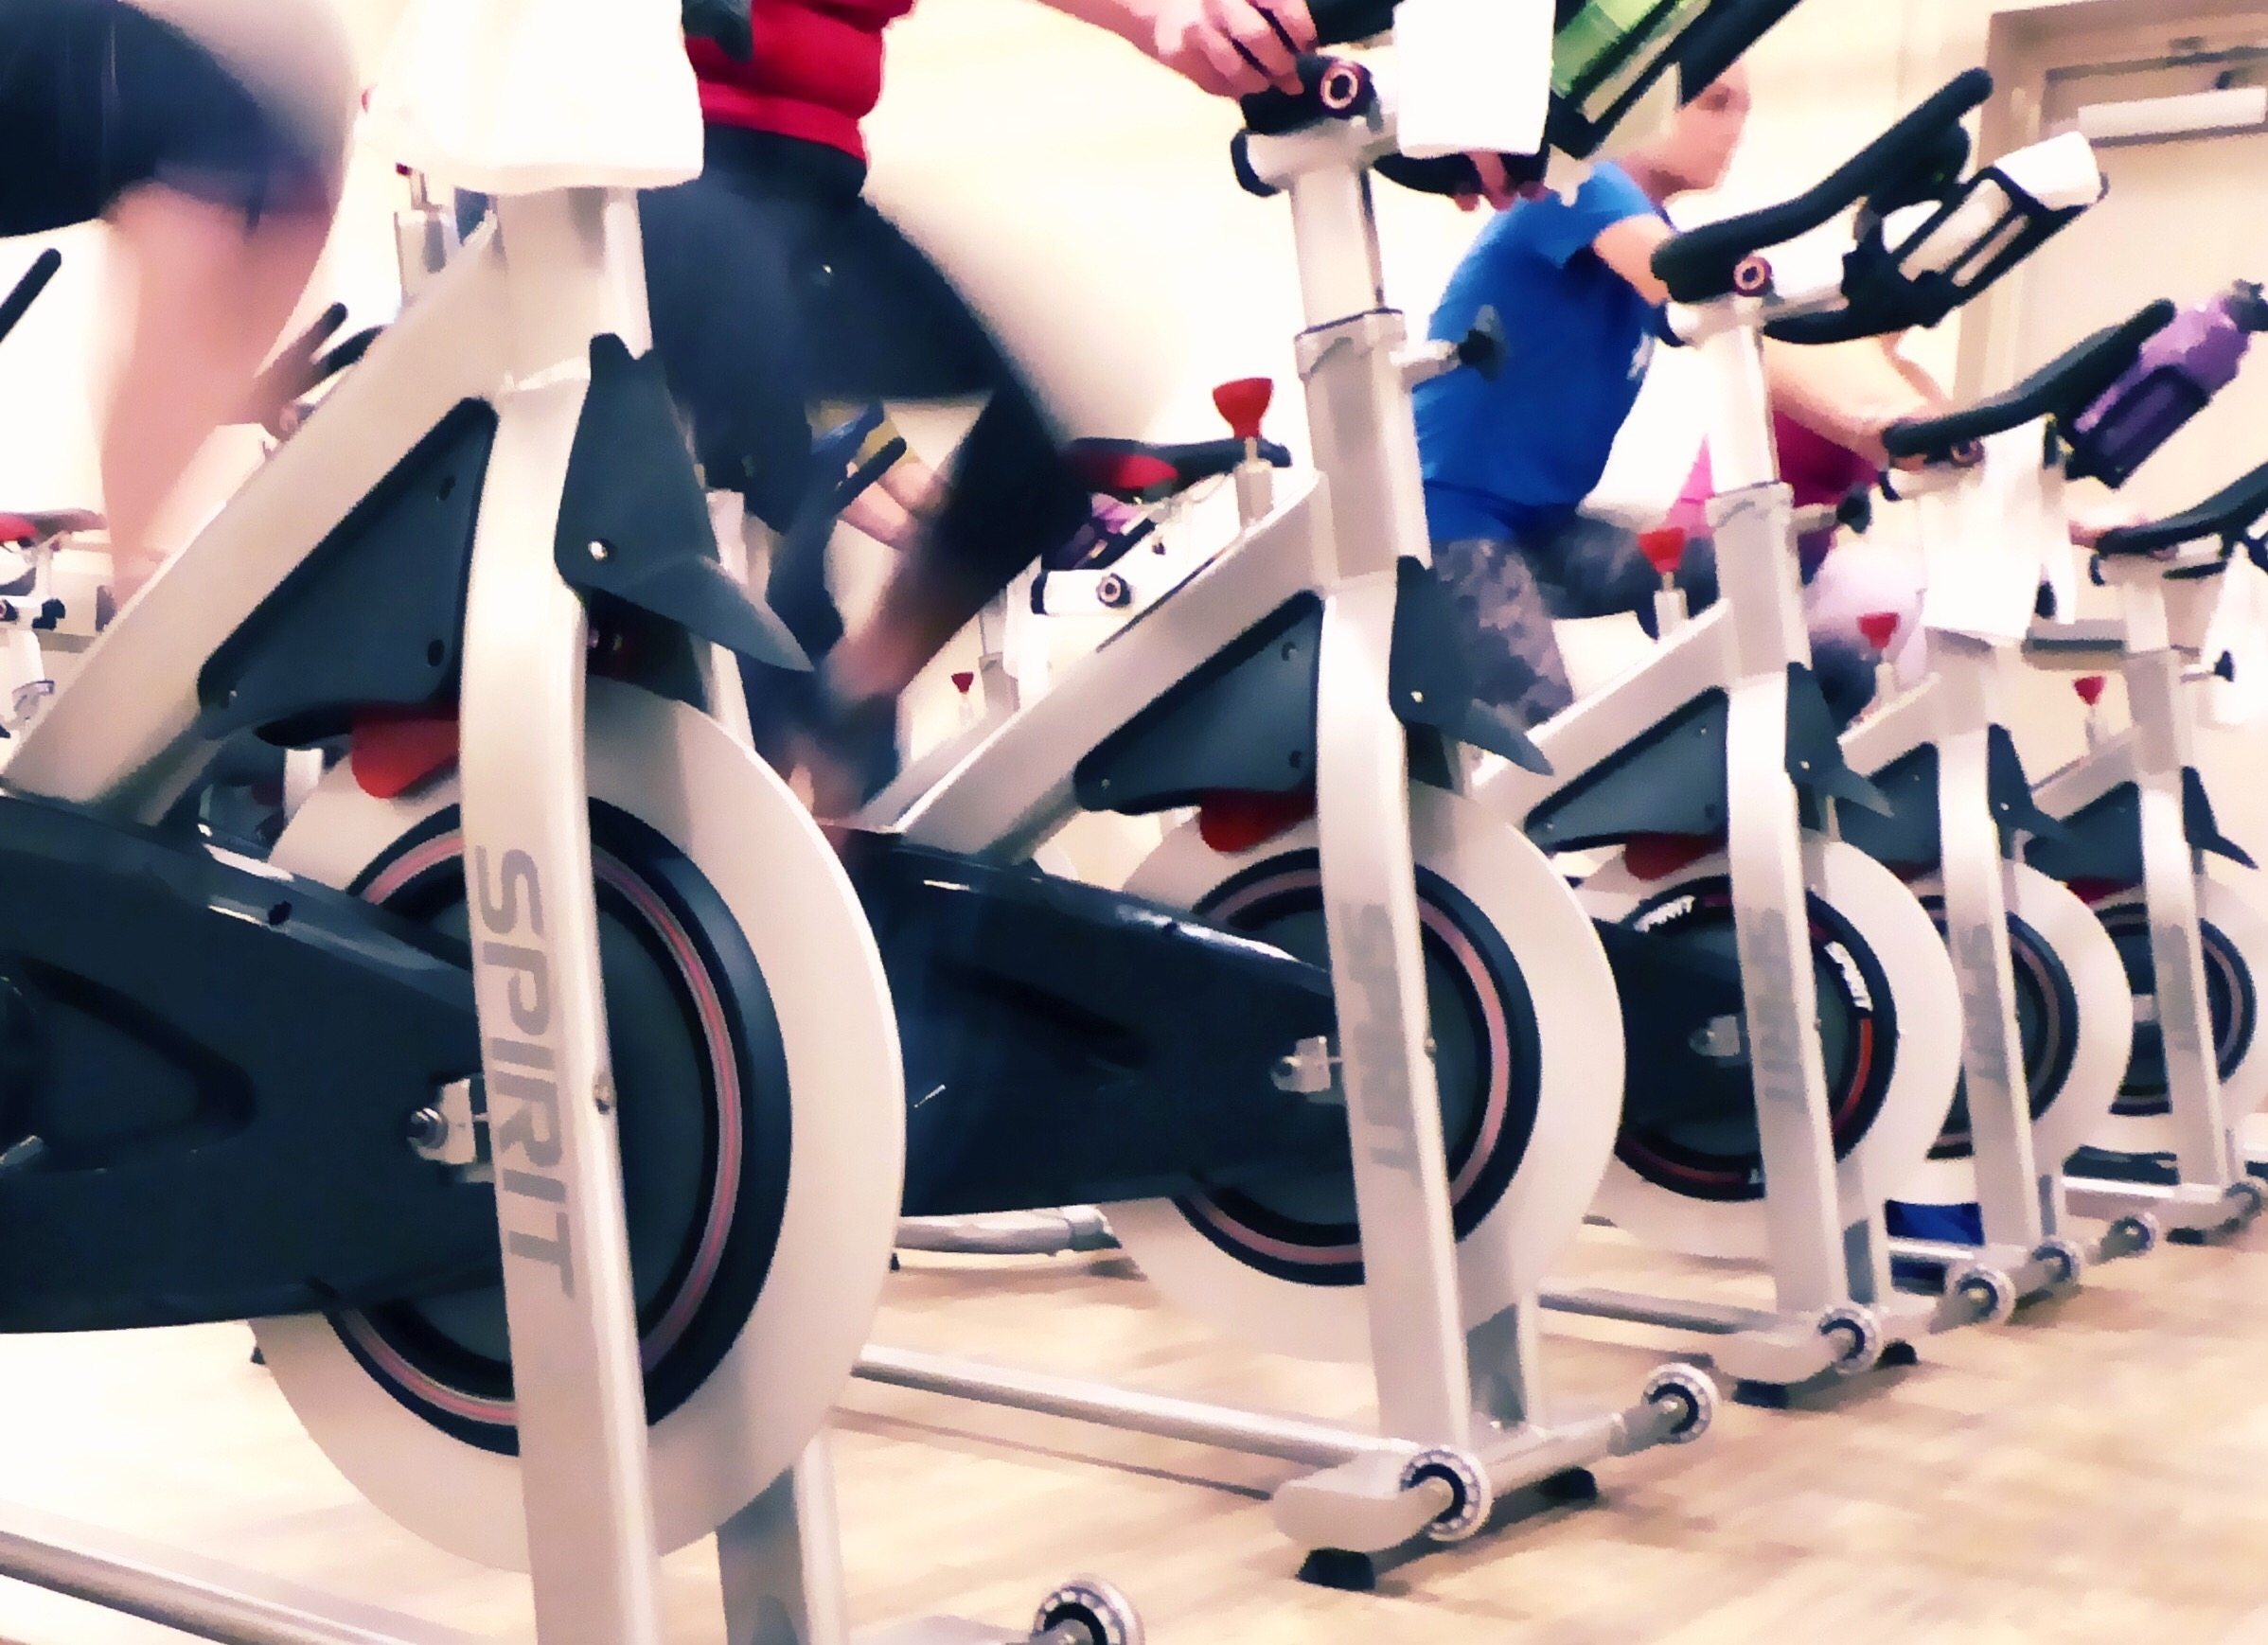 Spin Classes, Cycle Classes, Bootcamp Classes, HIIT Classes,  kettlebell classes, TRX Classes, Boxing Classes near me